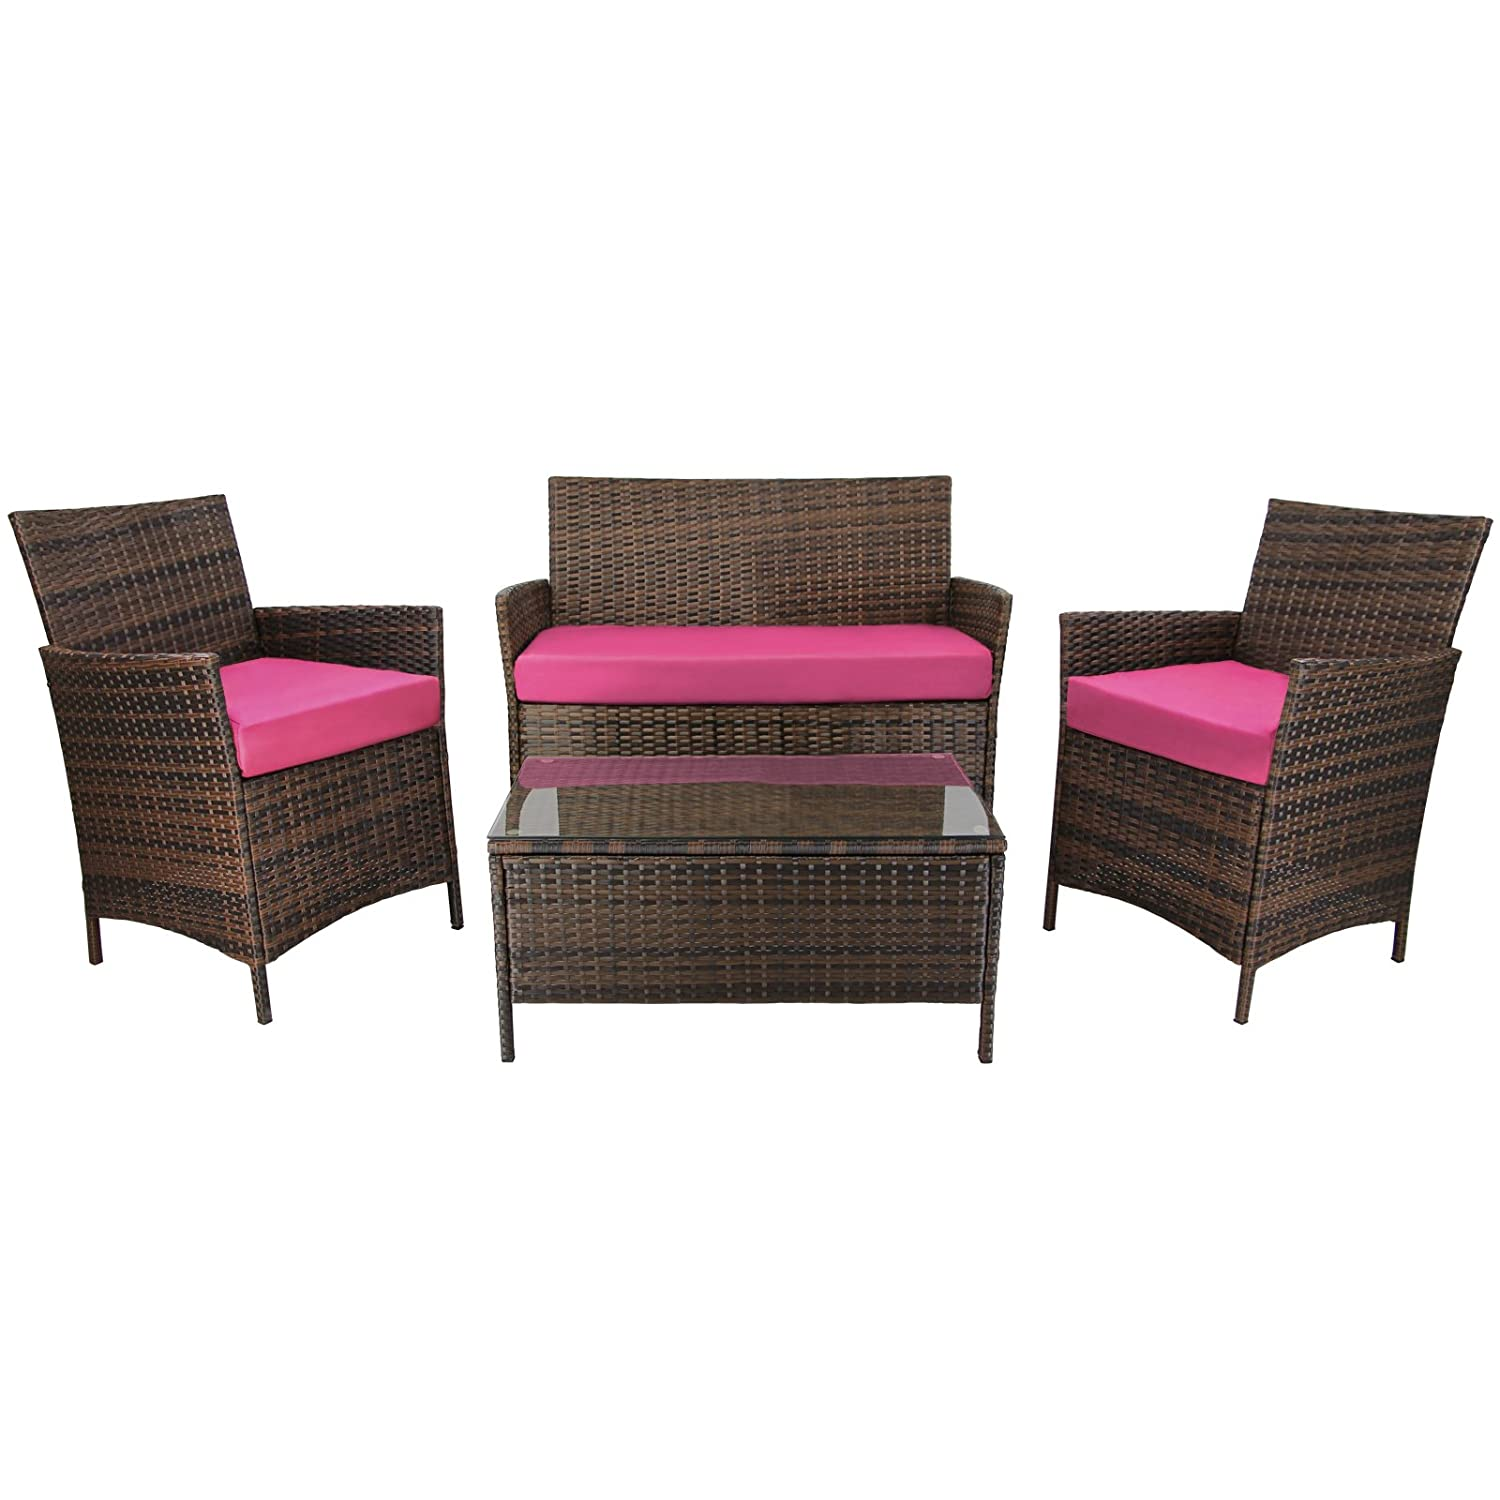 7 teilige rattan sitzgruppe lounge kuba lounge set poly rattan inkl auflagen und bez ge. Black Bedroom Furniture Sets. Home Design Ideas